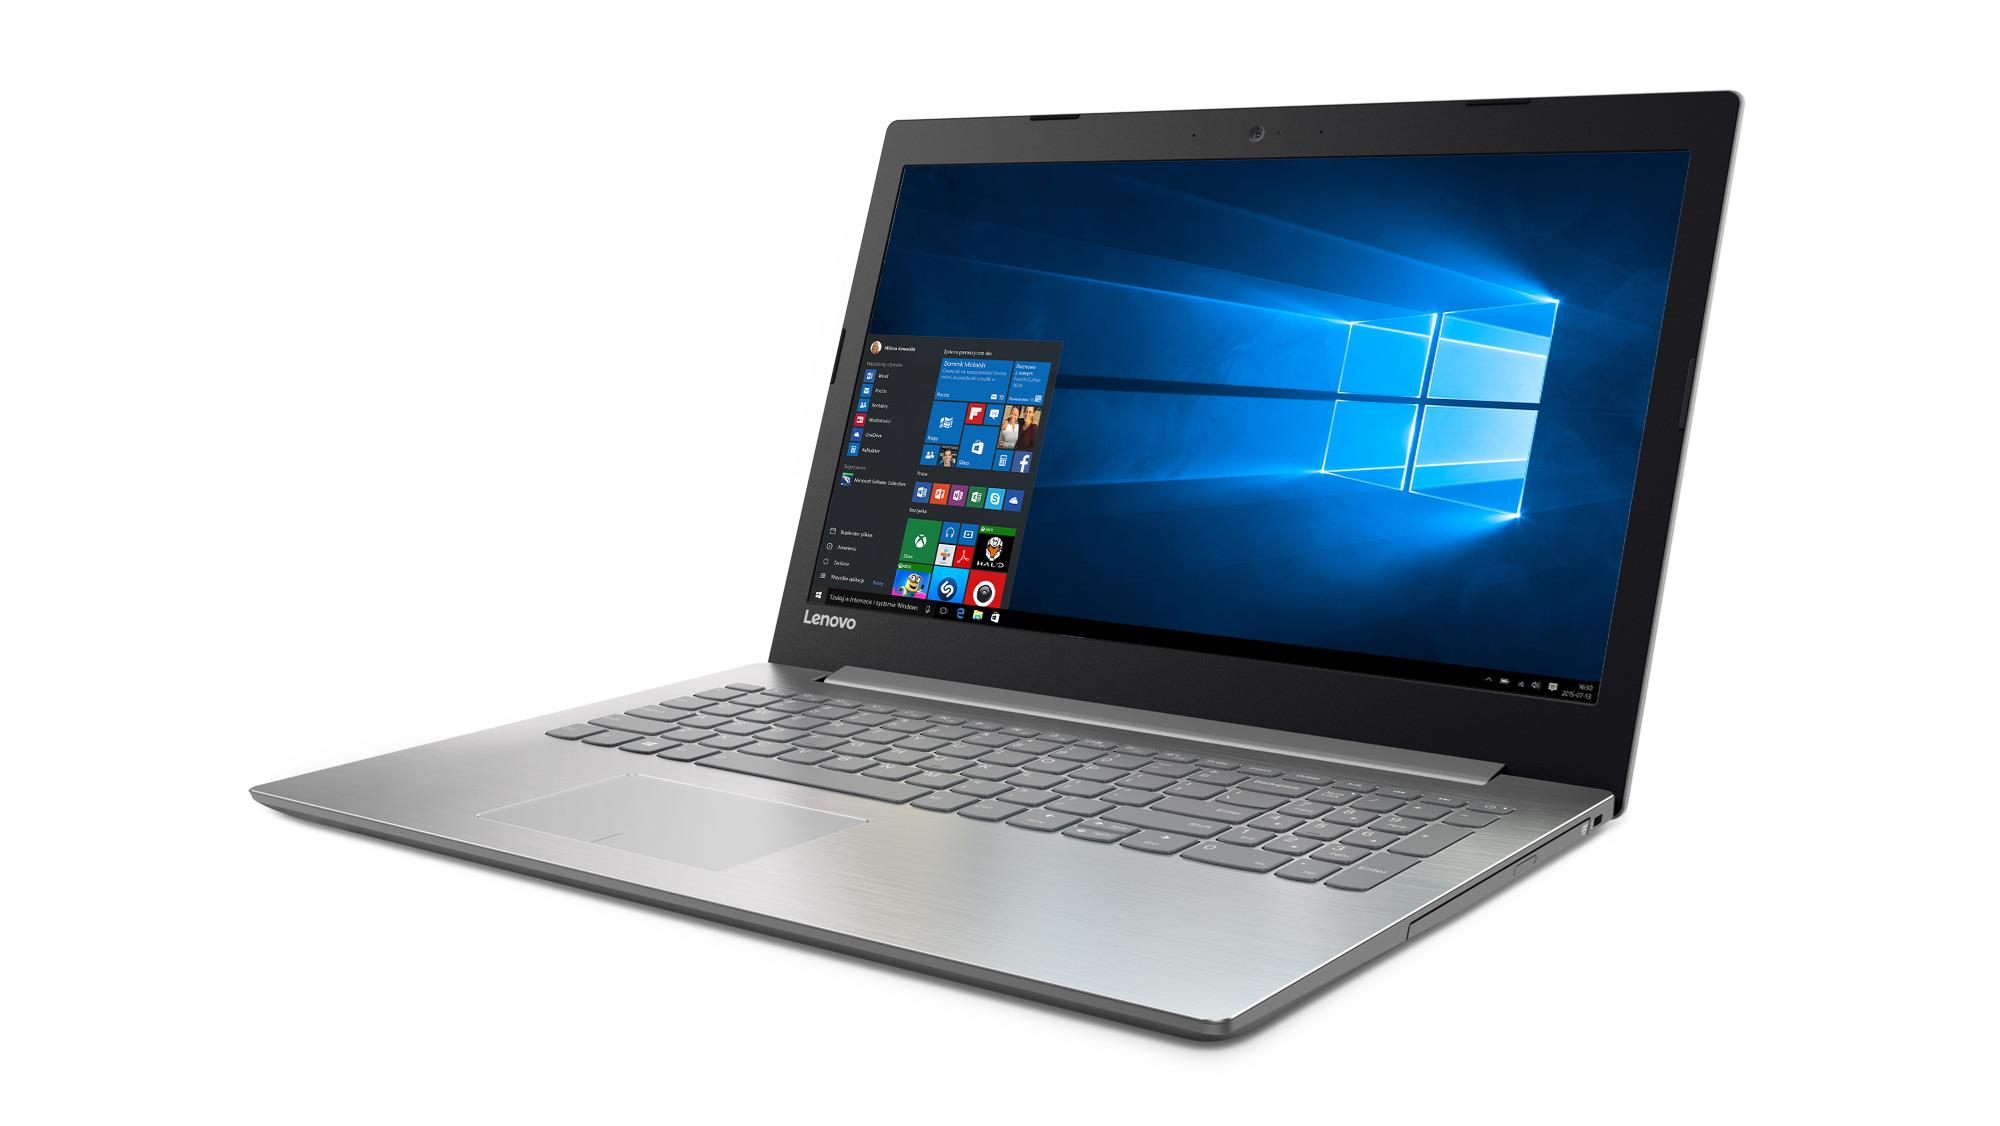 OUTLET Lenovo Ideapad 320 15 A12 9720 8 256SSD Win